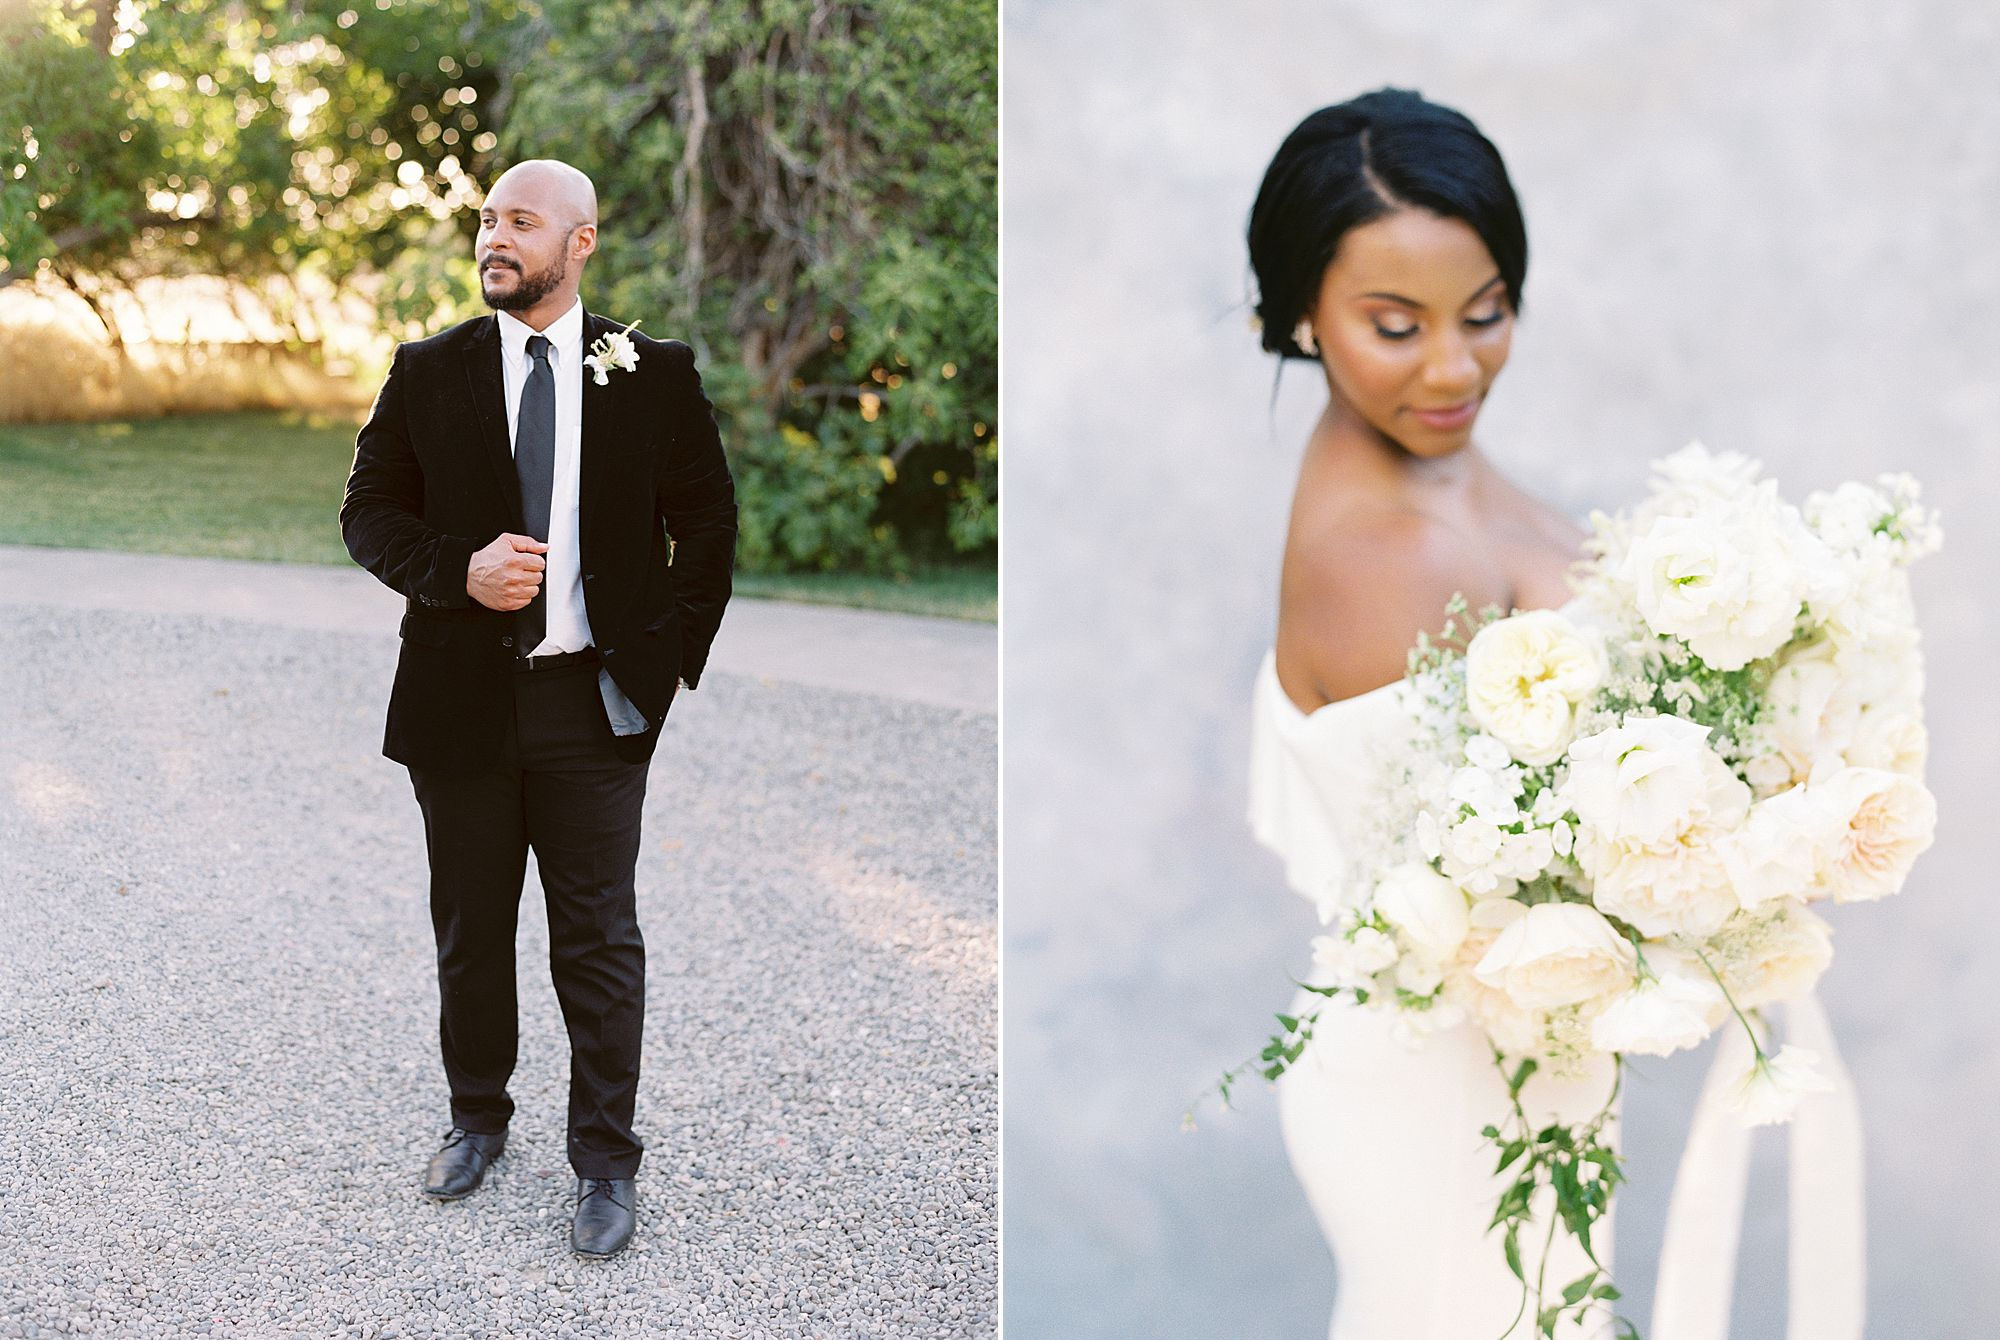 Park Winters Micro-Wedding Inspiration on Style Me Pretty - Stephanie Teague Events - Ashley Baumgartner - Park Winters Wedding - Black Tie Wedding - Micro-Wedding Sacramento Photographer_0053.jpg